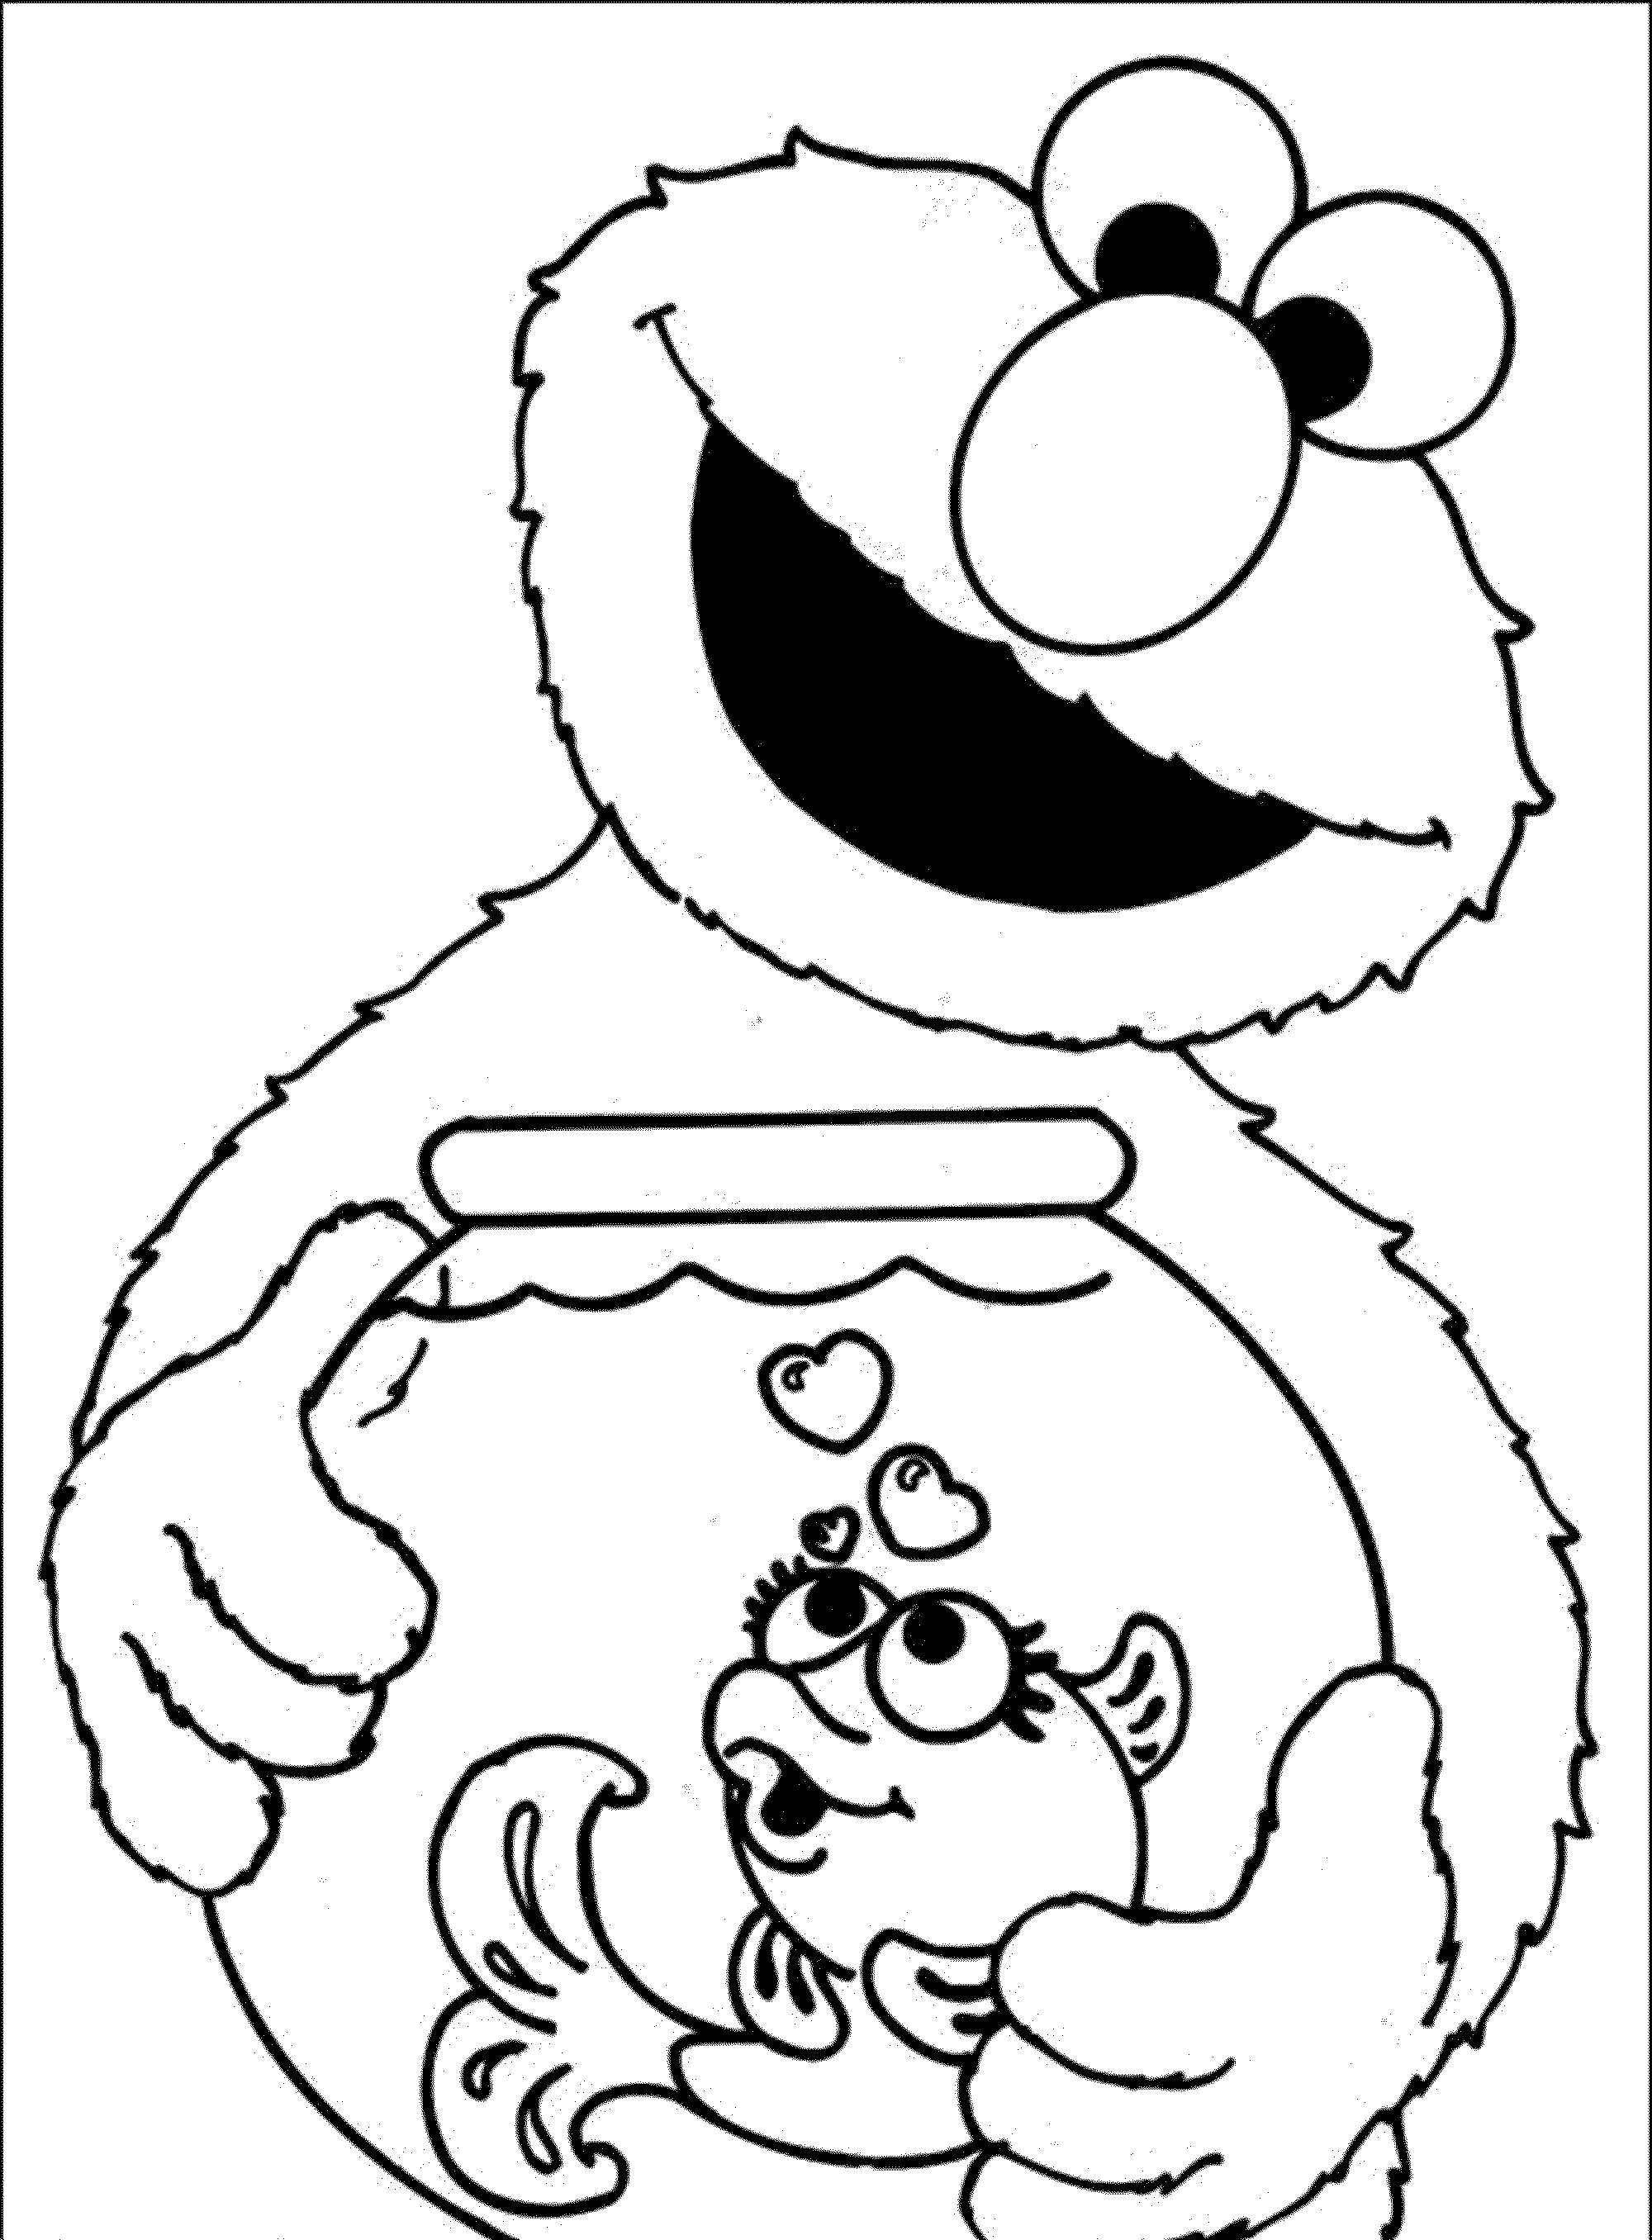 Goldfish Coloring Page Png - elmo and dorothy coloring pages | Elmo coloring pages, Sesame ...